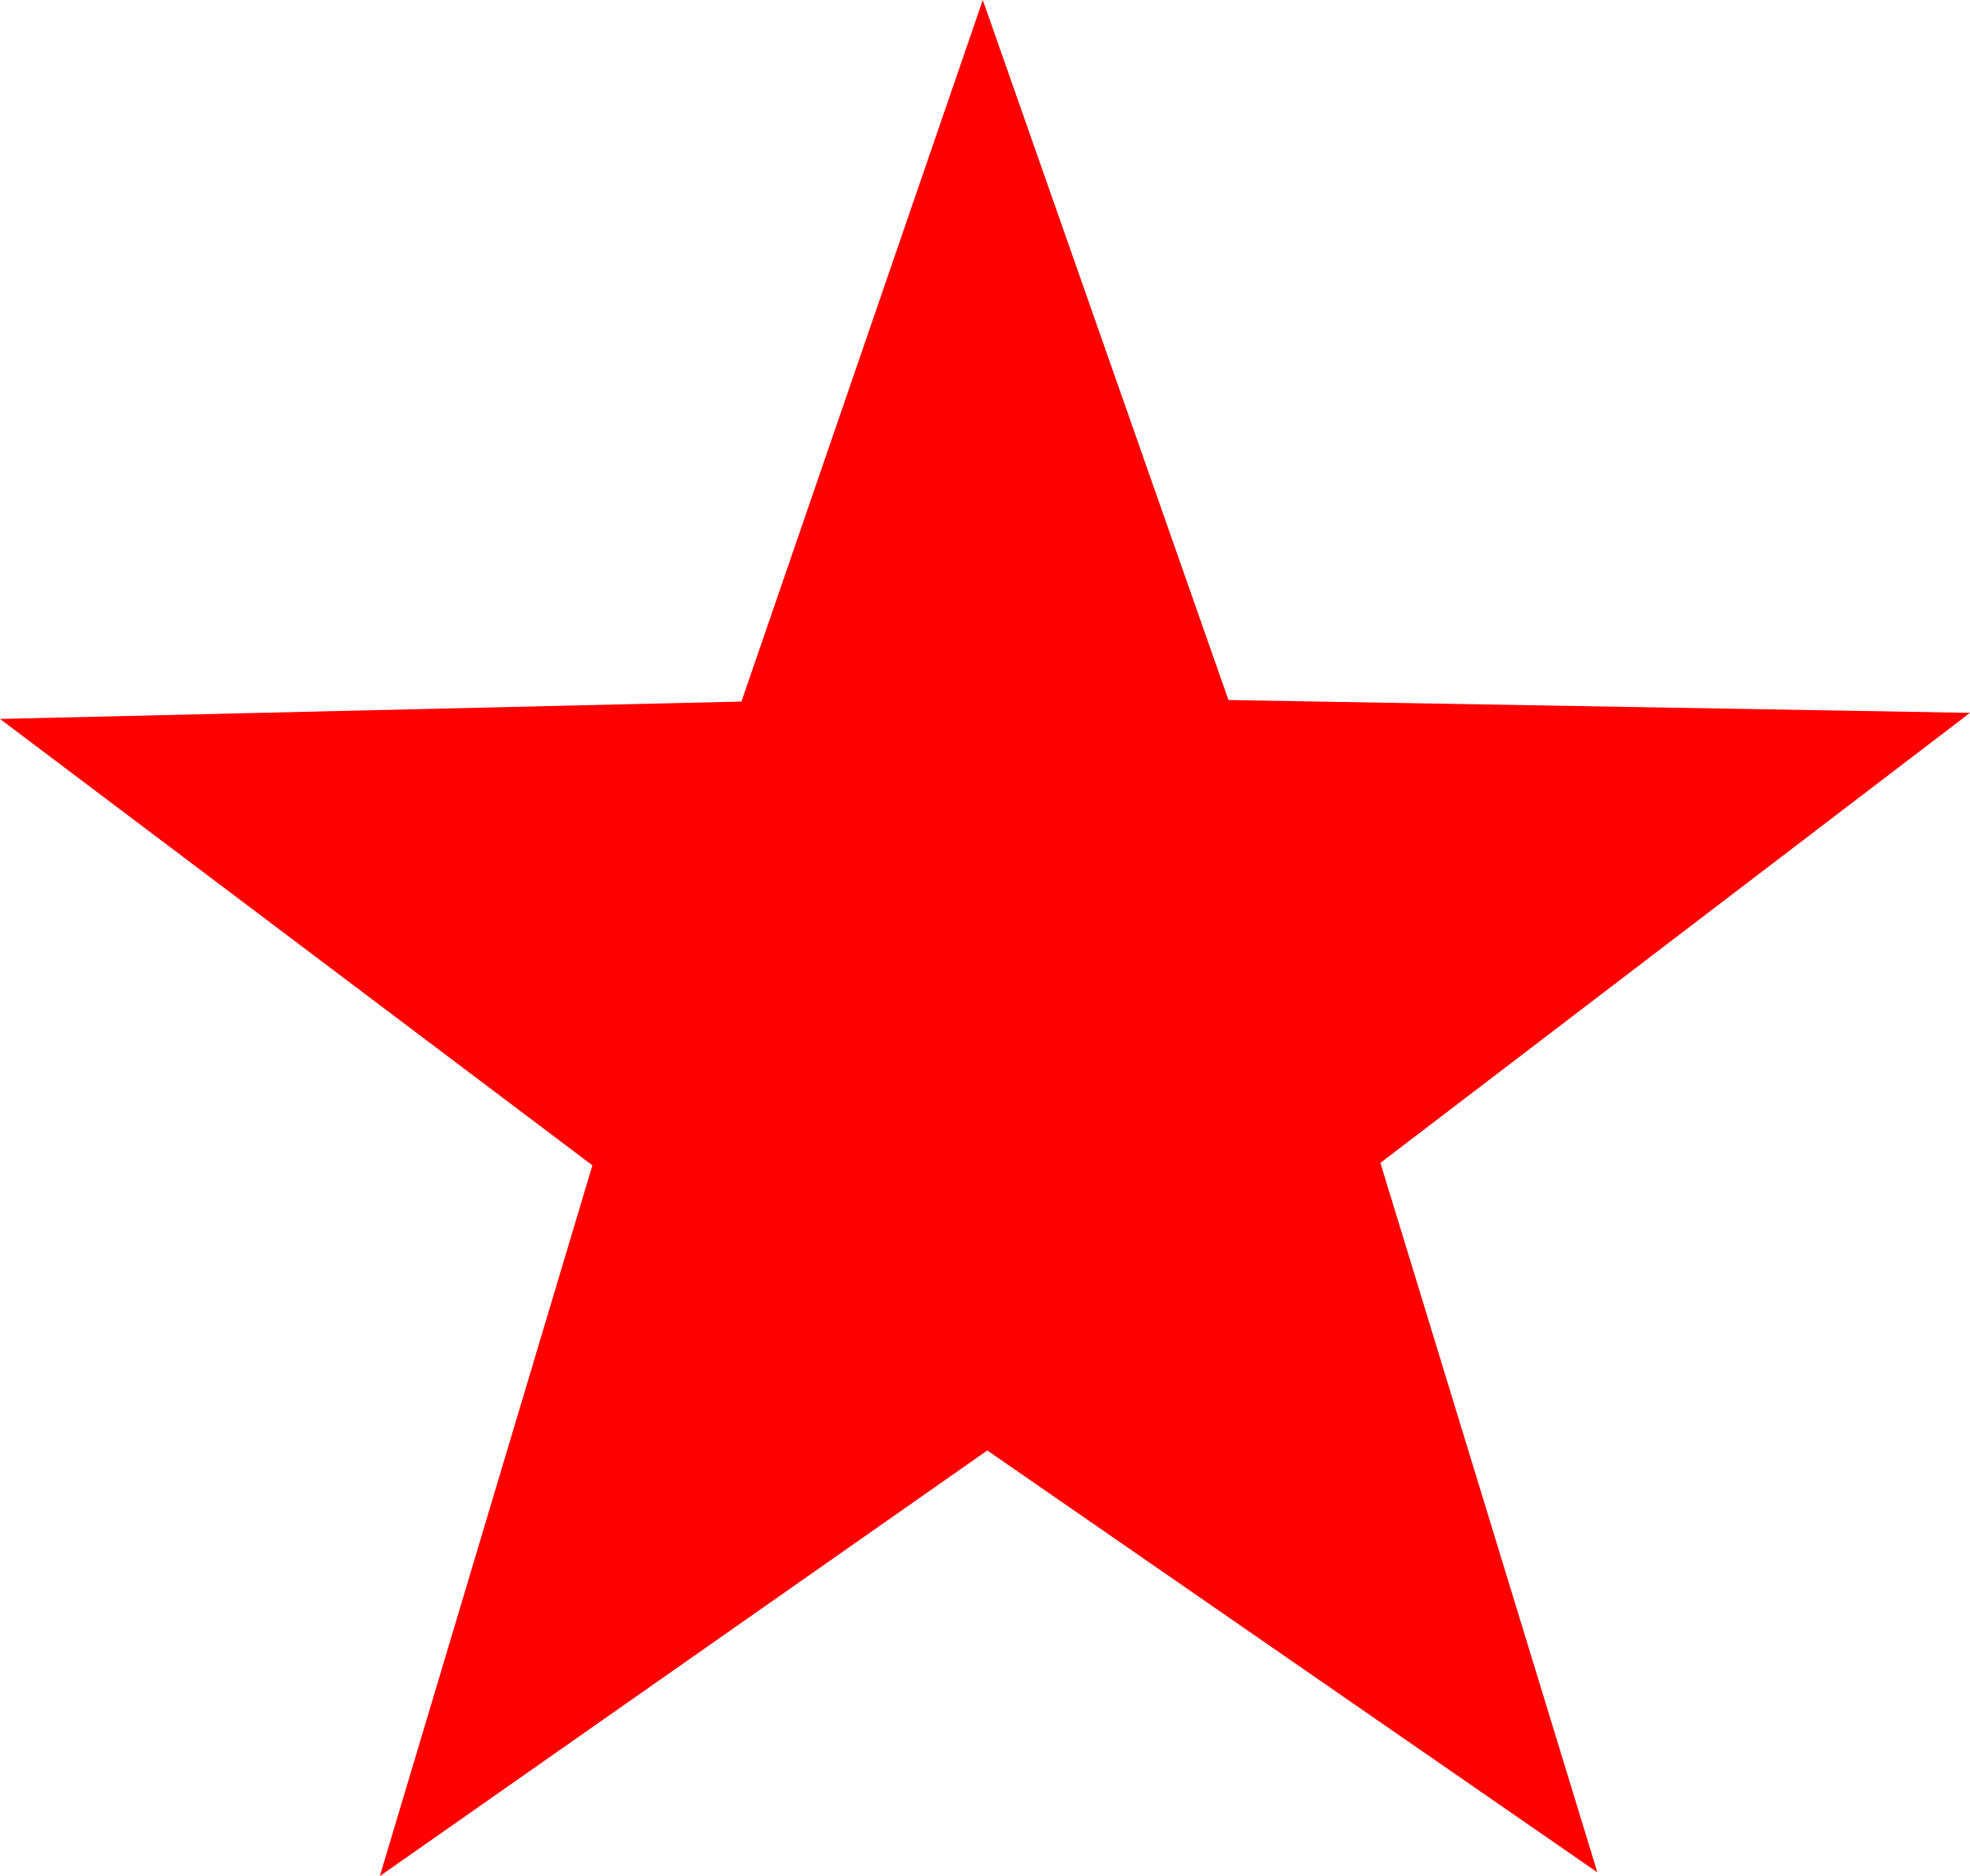 Star images free download. Red stars png image royalty free